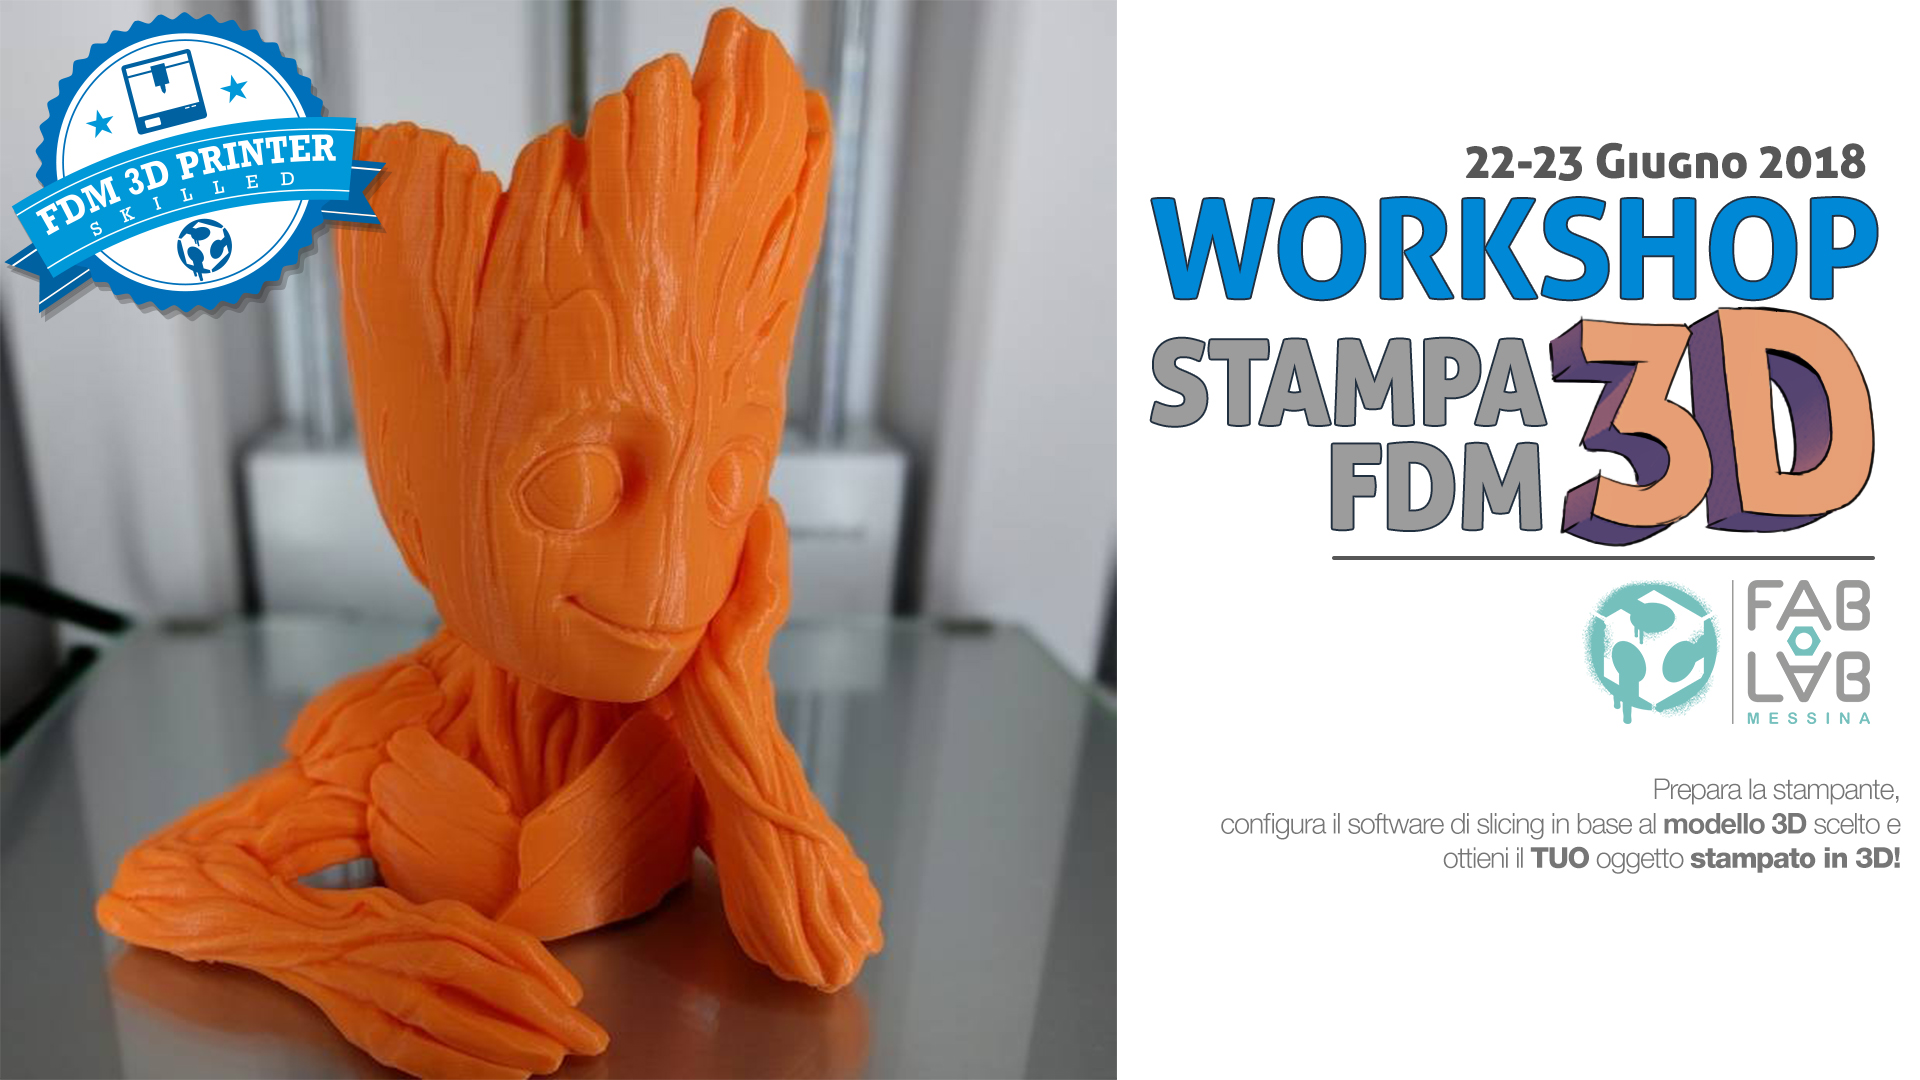 Workshop Stampa 3D fdm